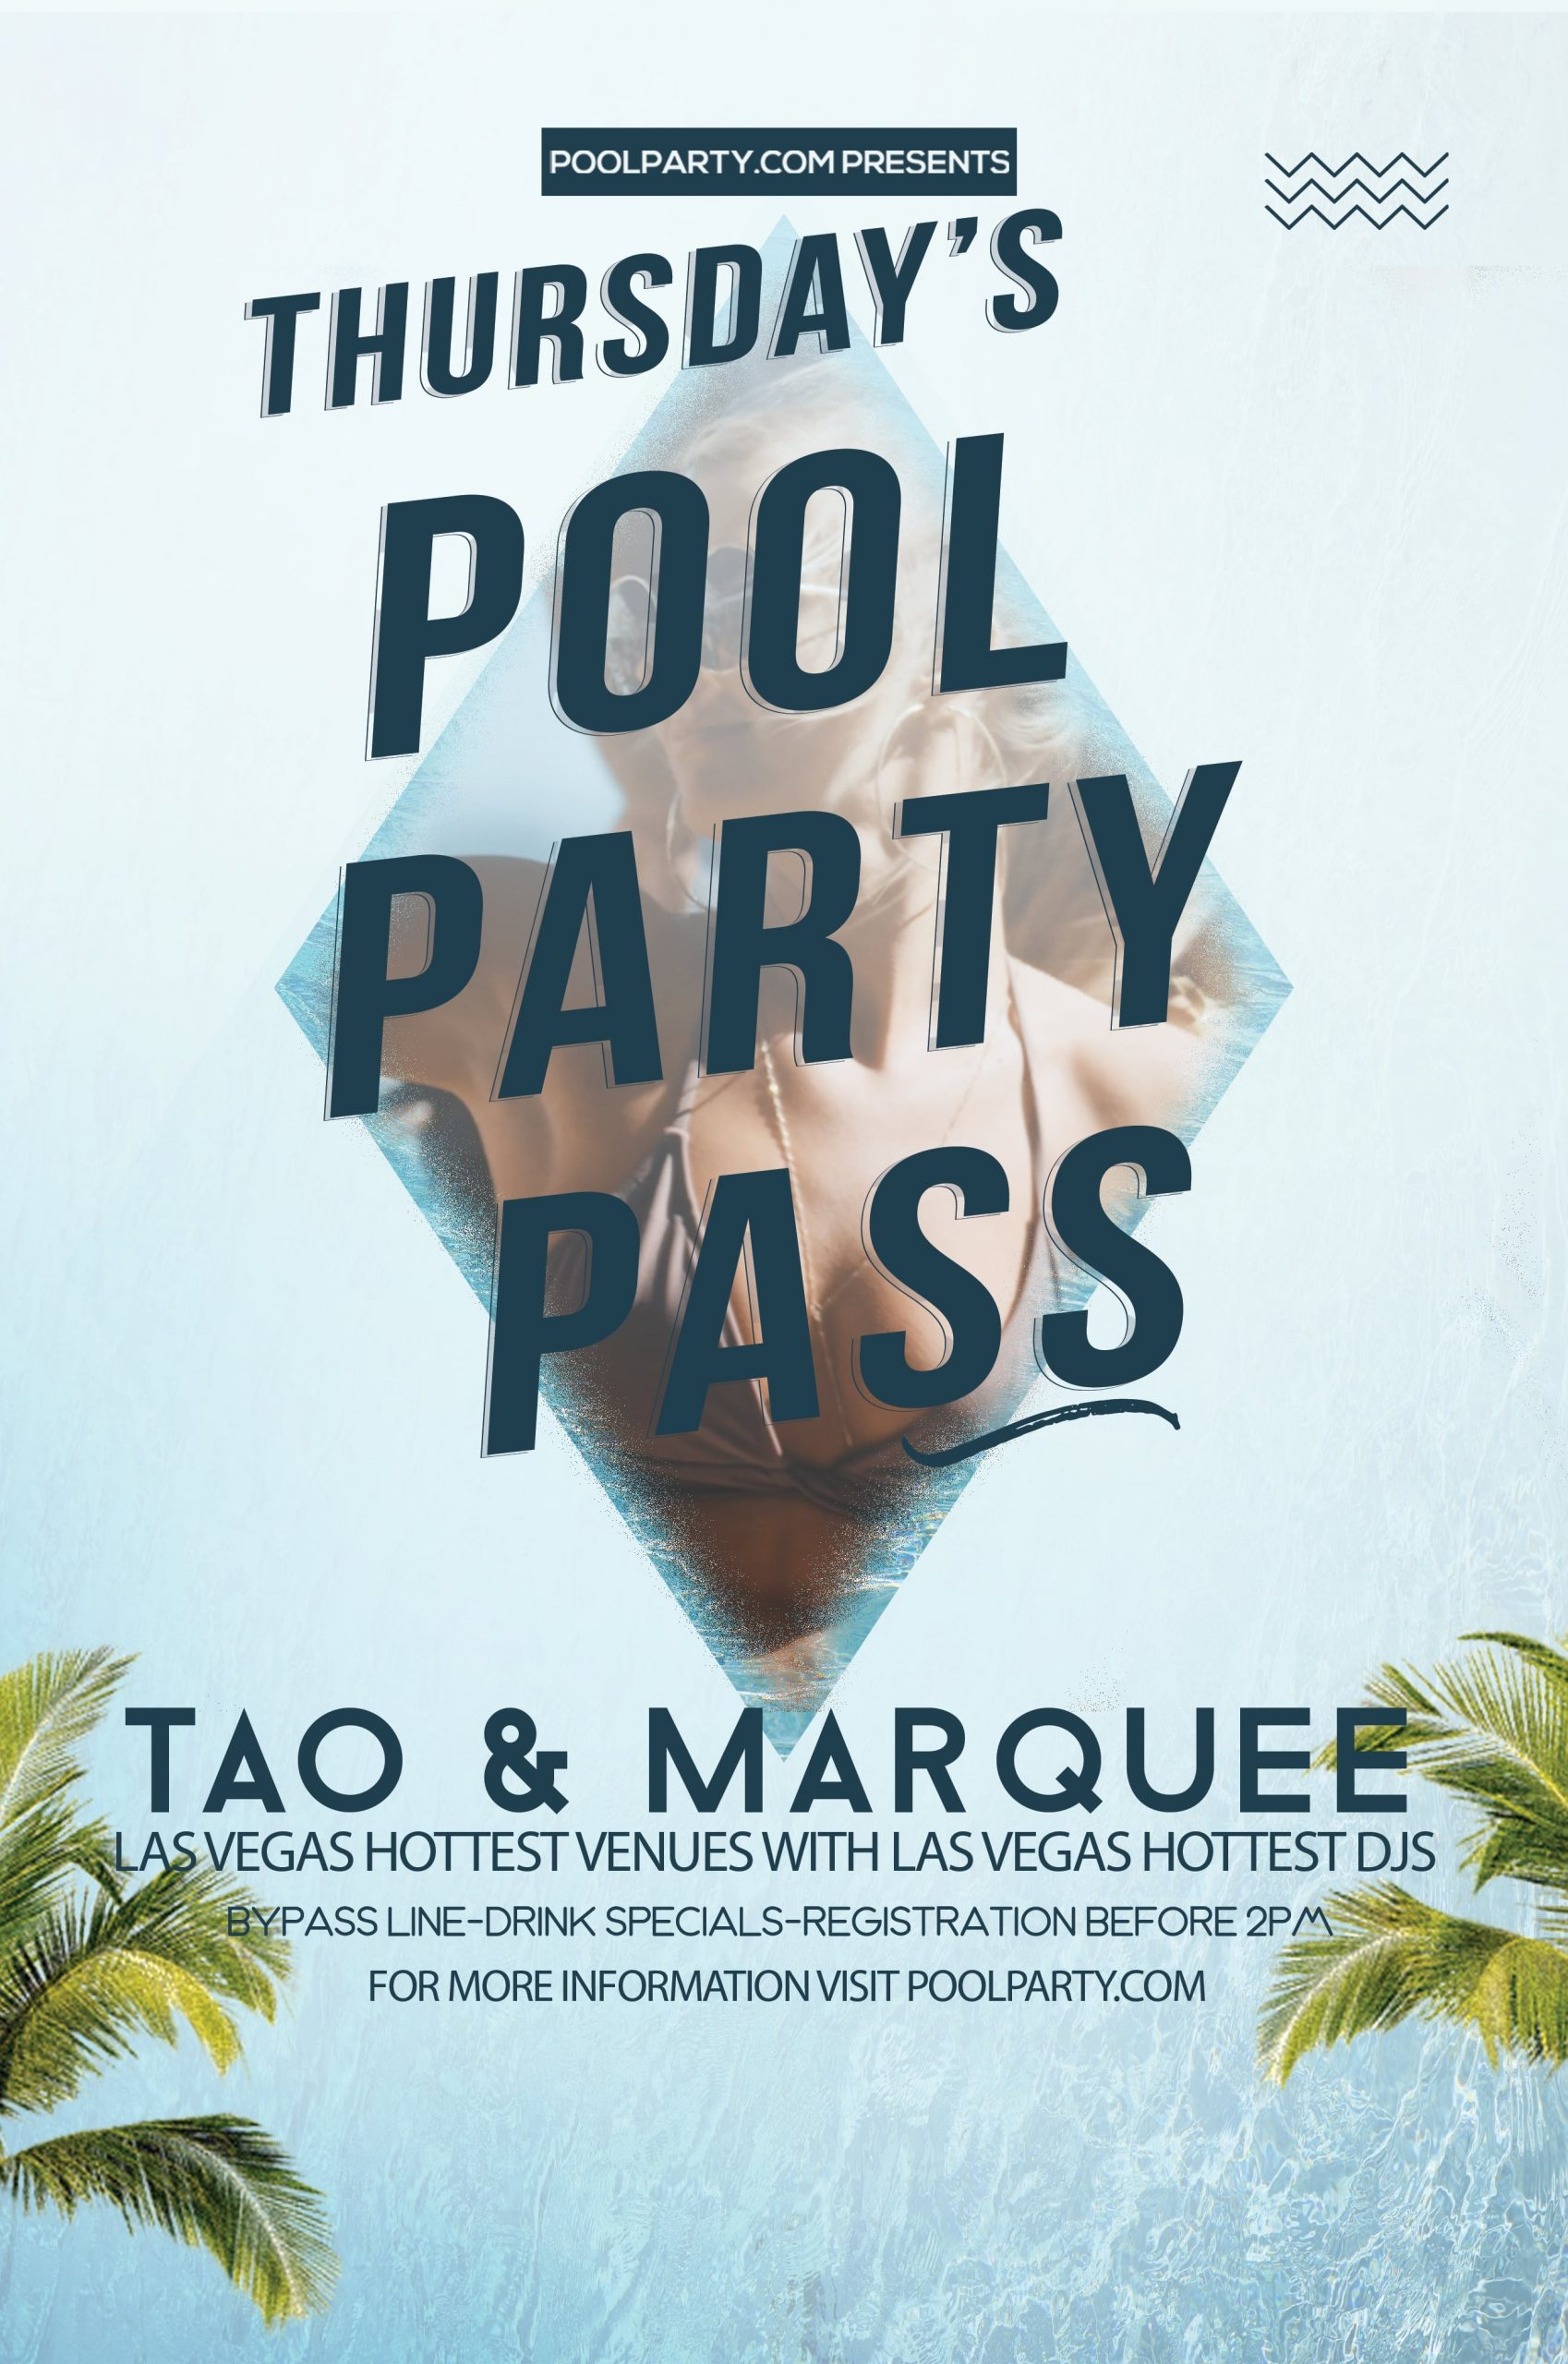 Thursday's Pool Party Pass (August 01st)*NOW INCLUDING FREE ADMISSION TO TAO NIGHTCLUB*